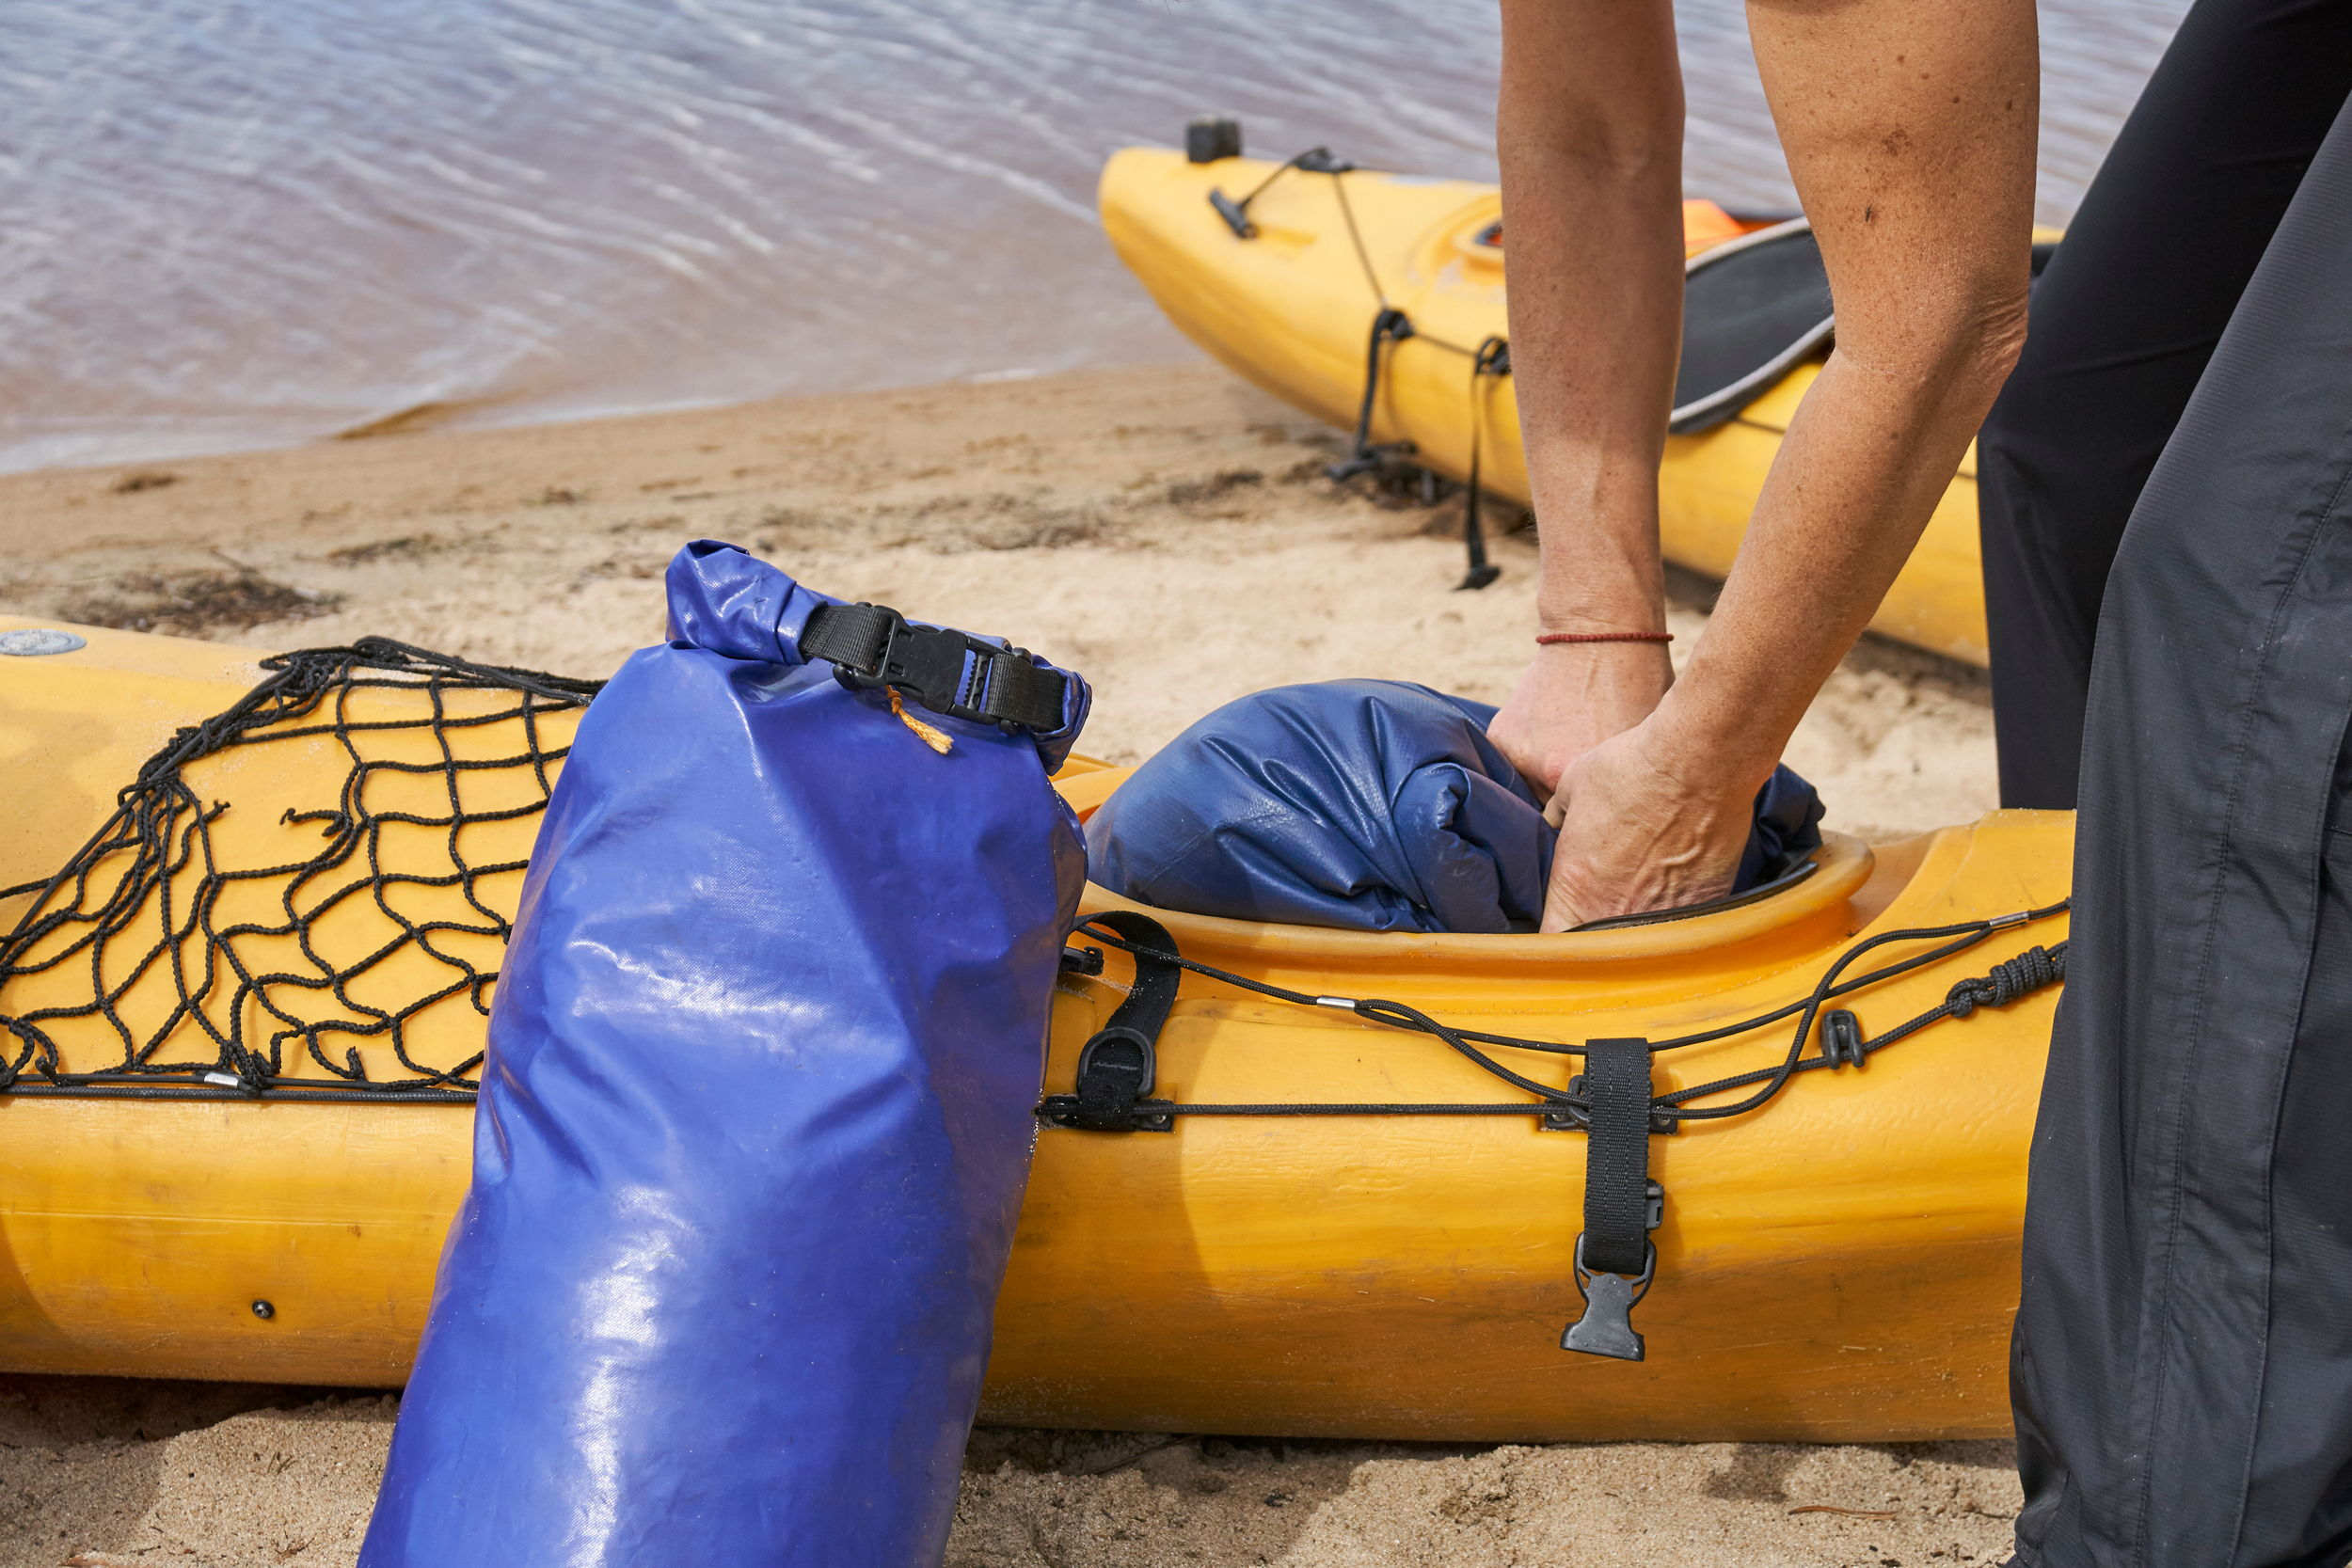 Canva - Female hiker puts a waterproof bag into the kayak